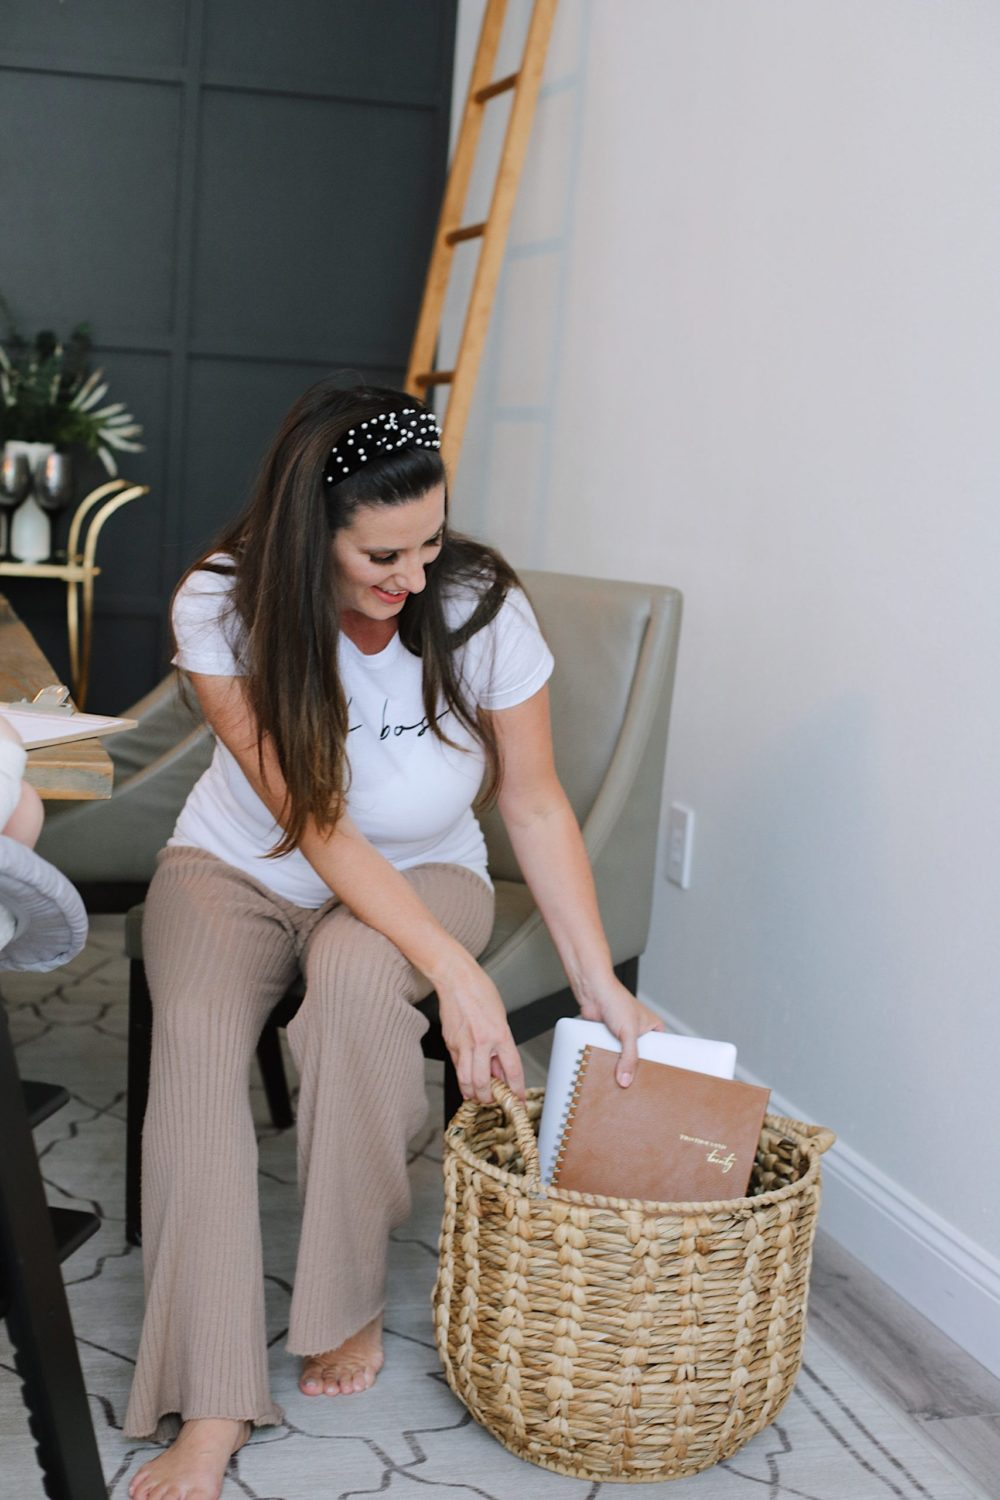 How to Survive Working With Kids at Home - Tips for making the most of working from home with kids homeschooling. Click through for tips from lifestyle blogger Tabitha Blue of Fresh Mommy Blog! | Working From Home With Kids by popular Florida lifestyle blog, Fresh Mommy Blog: image of a mom placing a laptop and a planner in a wicker basket.